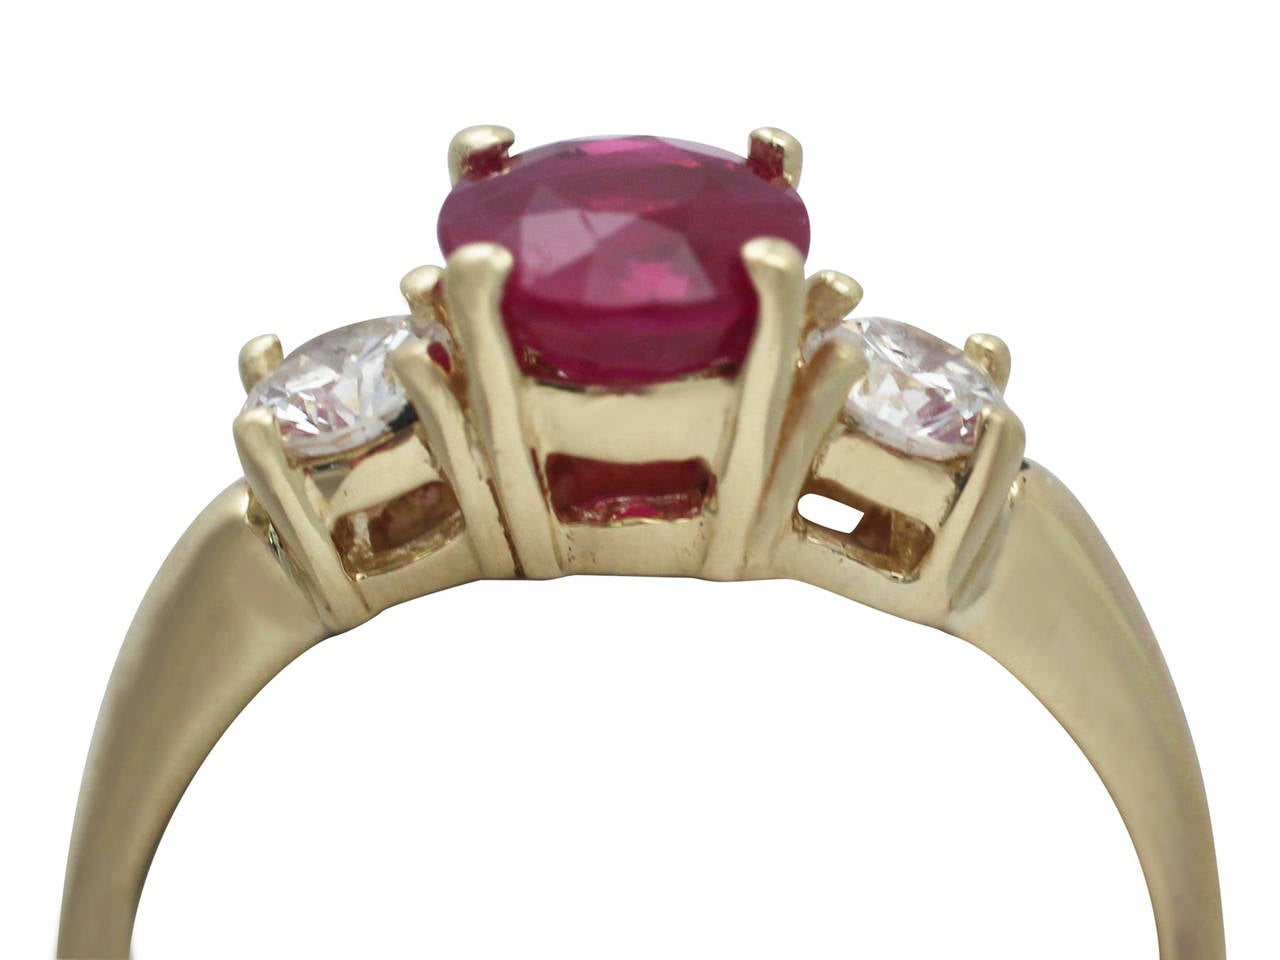 A fine and impressive contemporary 1.32 carat natural ruby and 0.46 carat diamond, 18 karat yellow gold three stone/trilogy ring; an addition to our contemporary jewelry and estate jewelry collections  This fine and impressive ruby and diamond